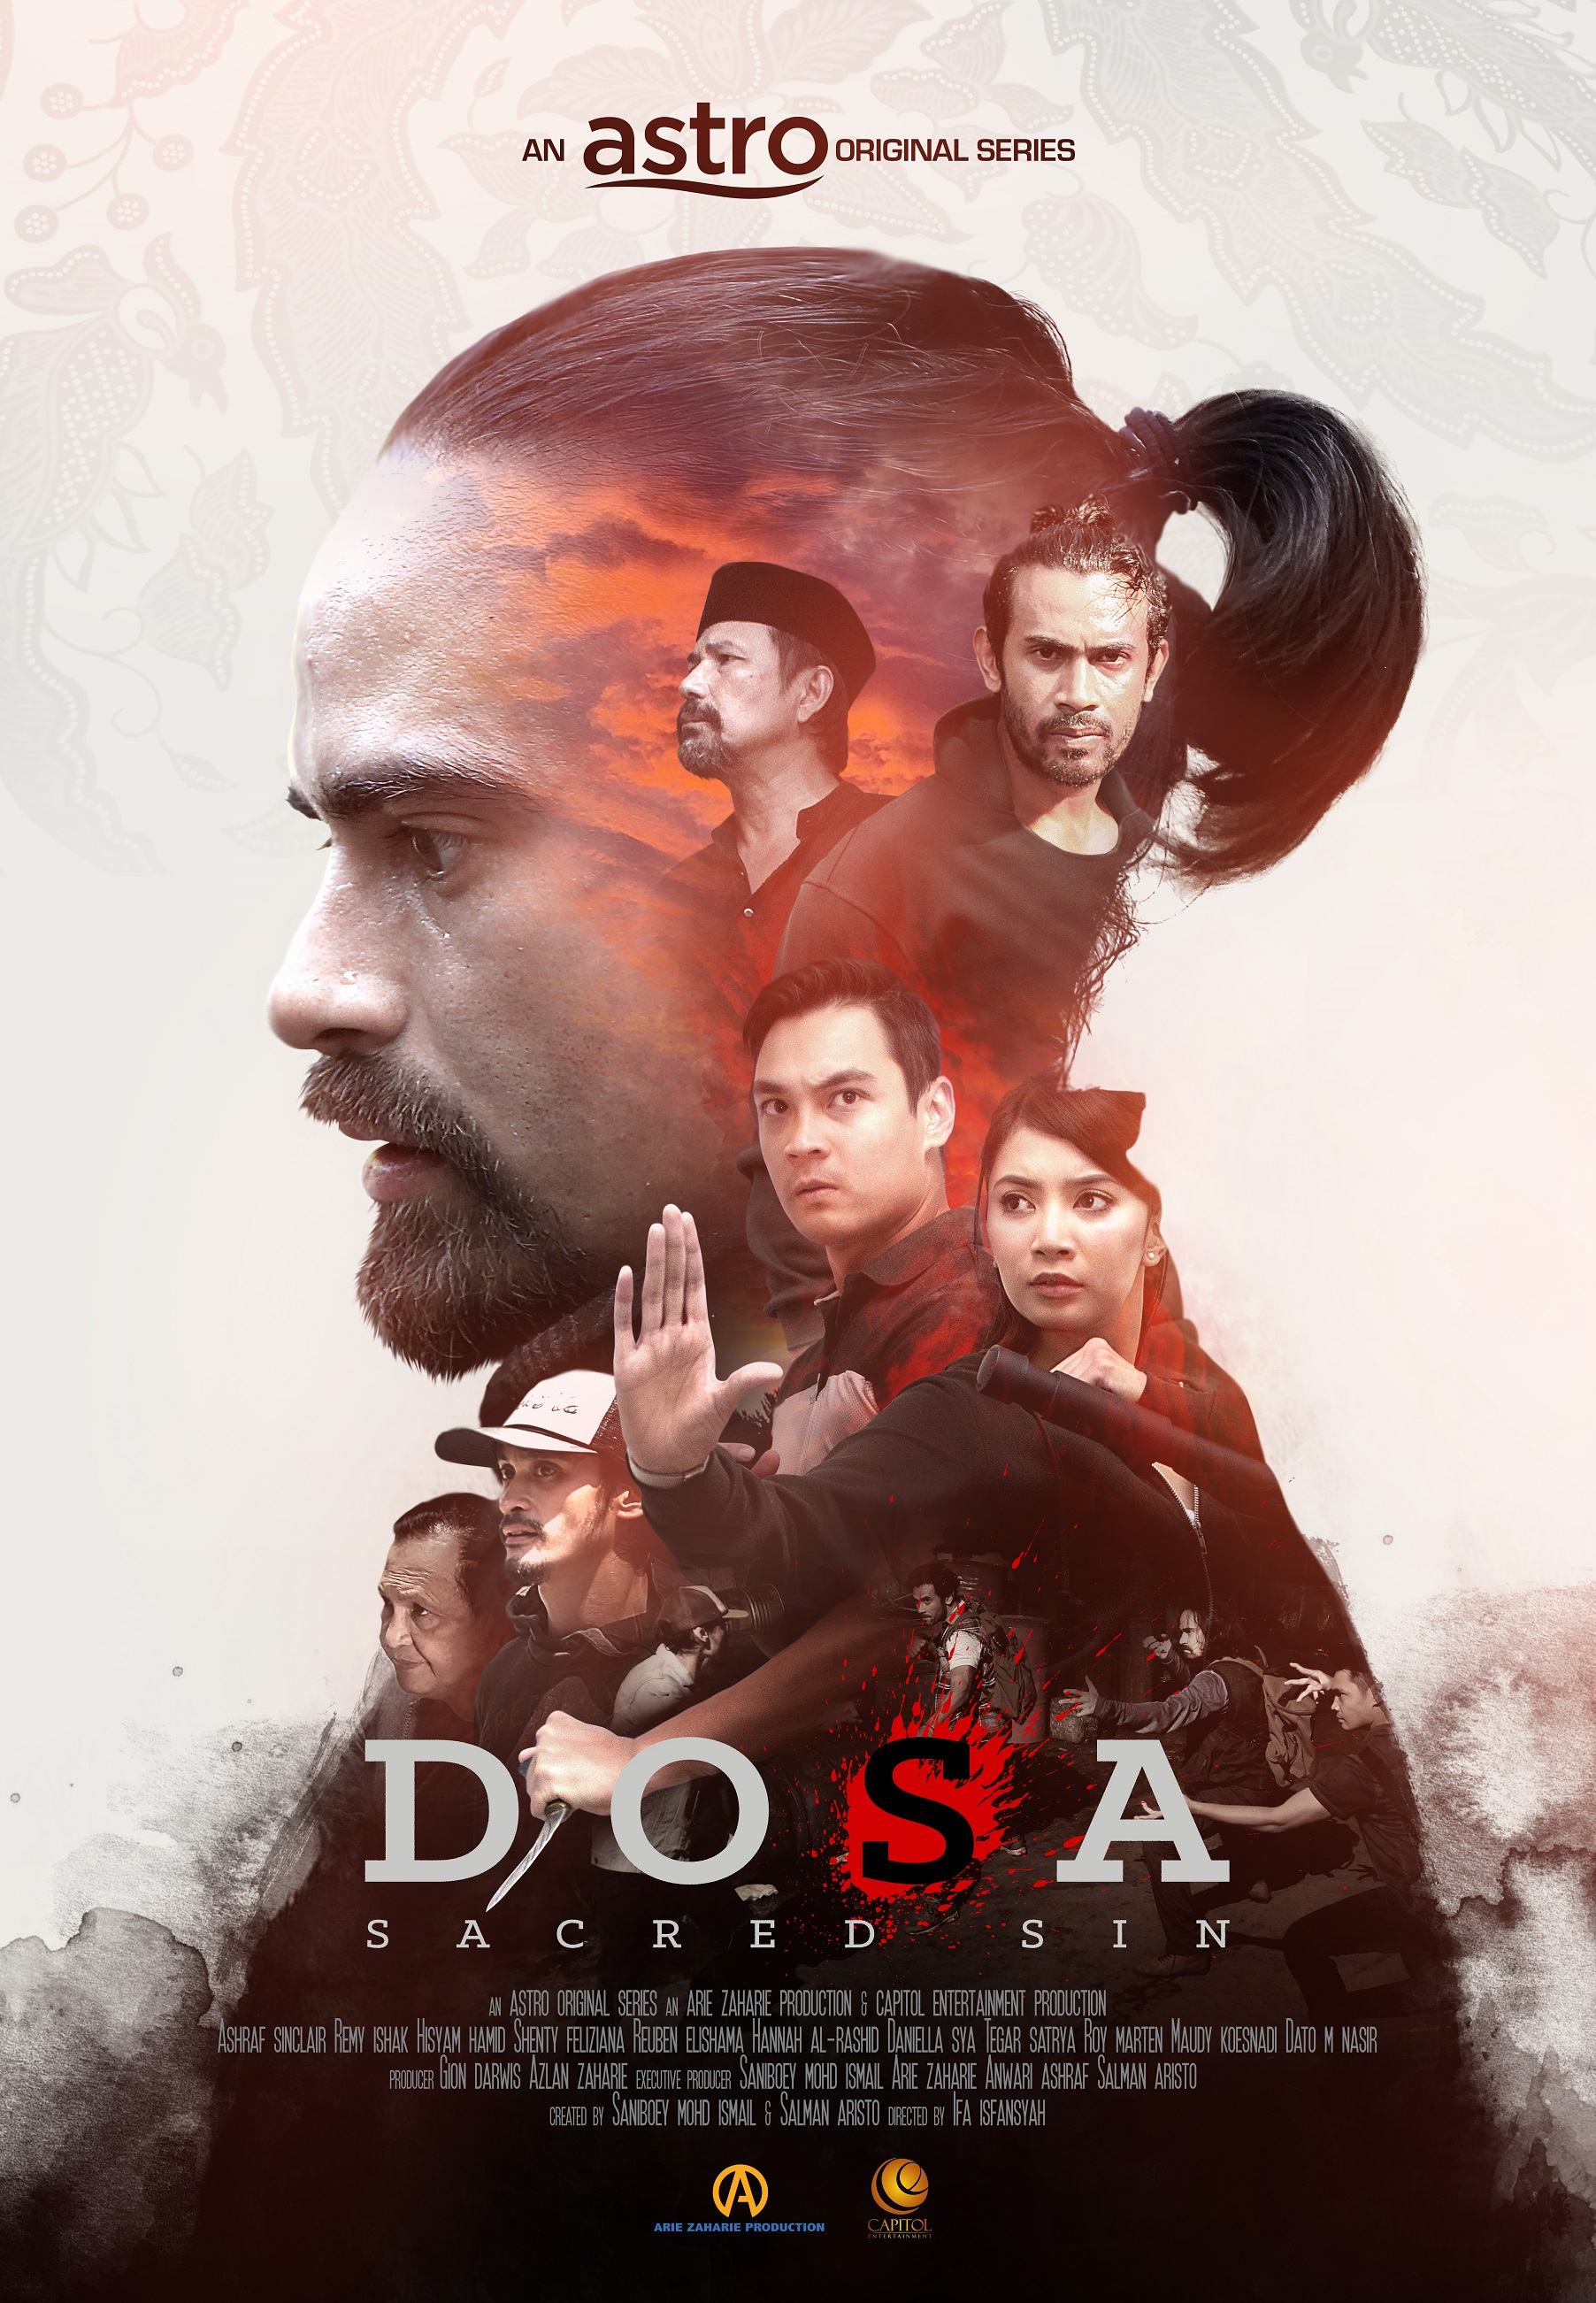 Astro Shaw's 'Do[s]a' and 'Sembilan' now available on Indonesia's GoPlay app